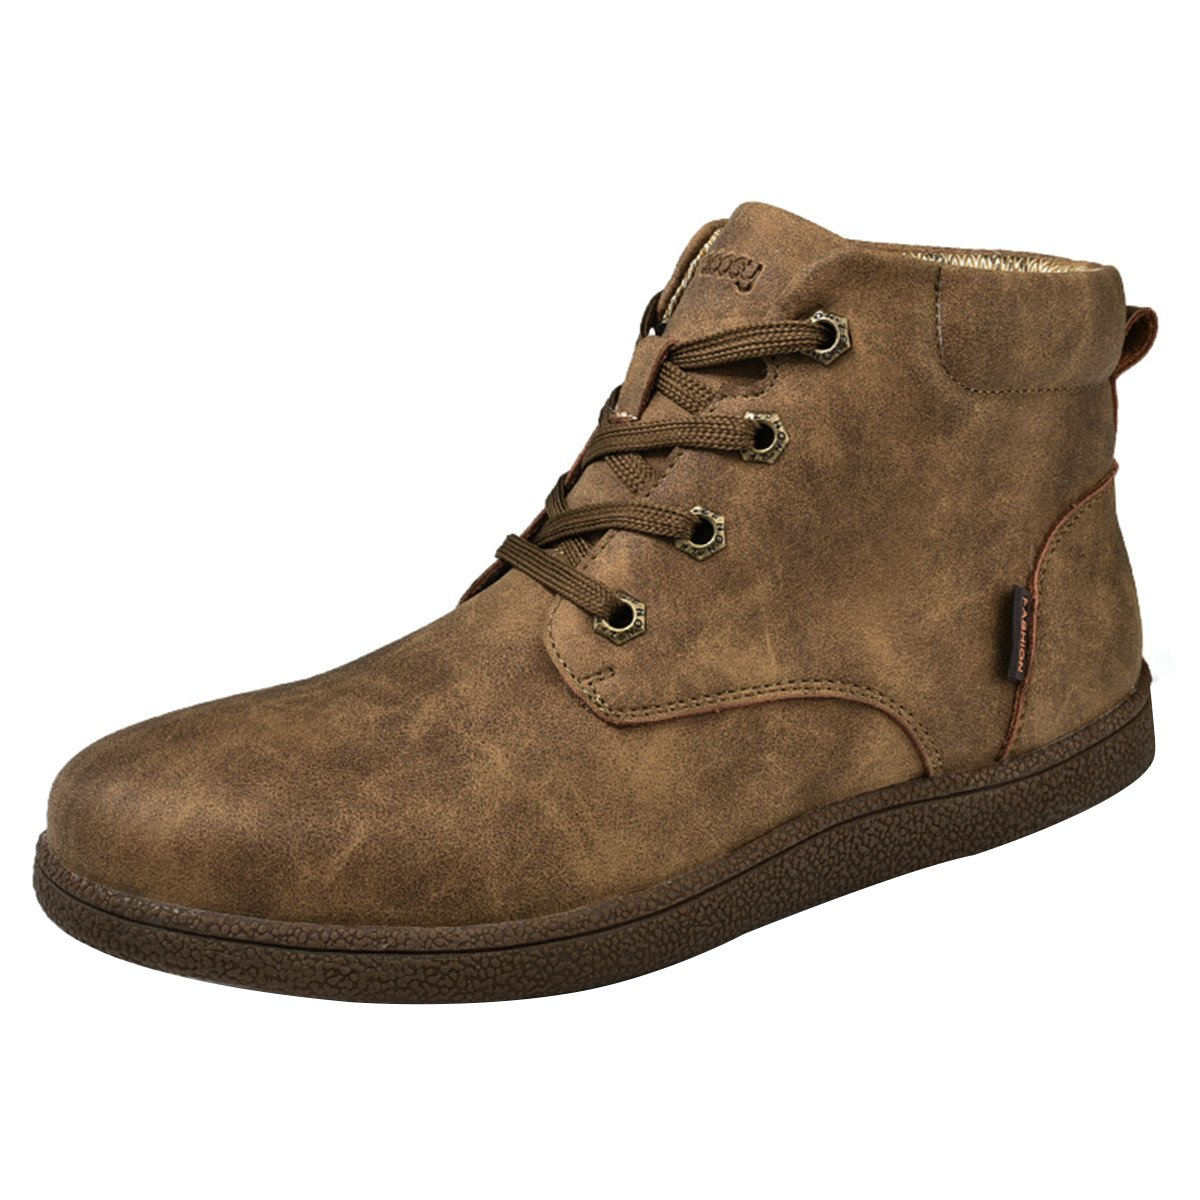 gracosy Martin Boots for Men, Men's Fashion Leather Lace up Boots Winter Cotton Lining Shoes Waterproof Boots Khaki Tag 45